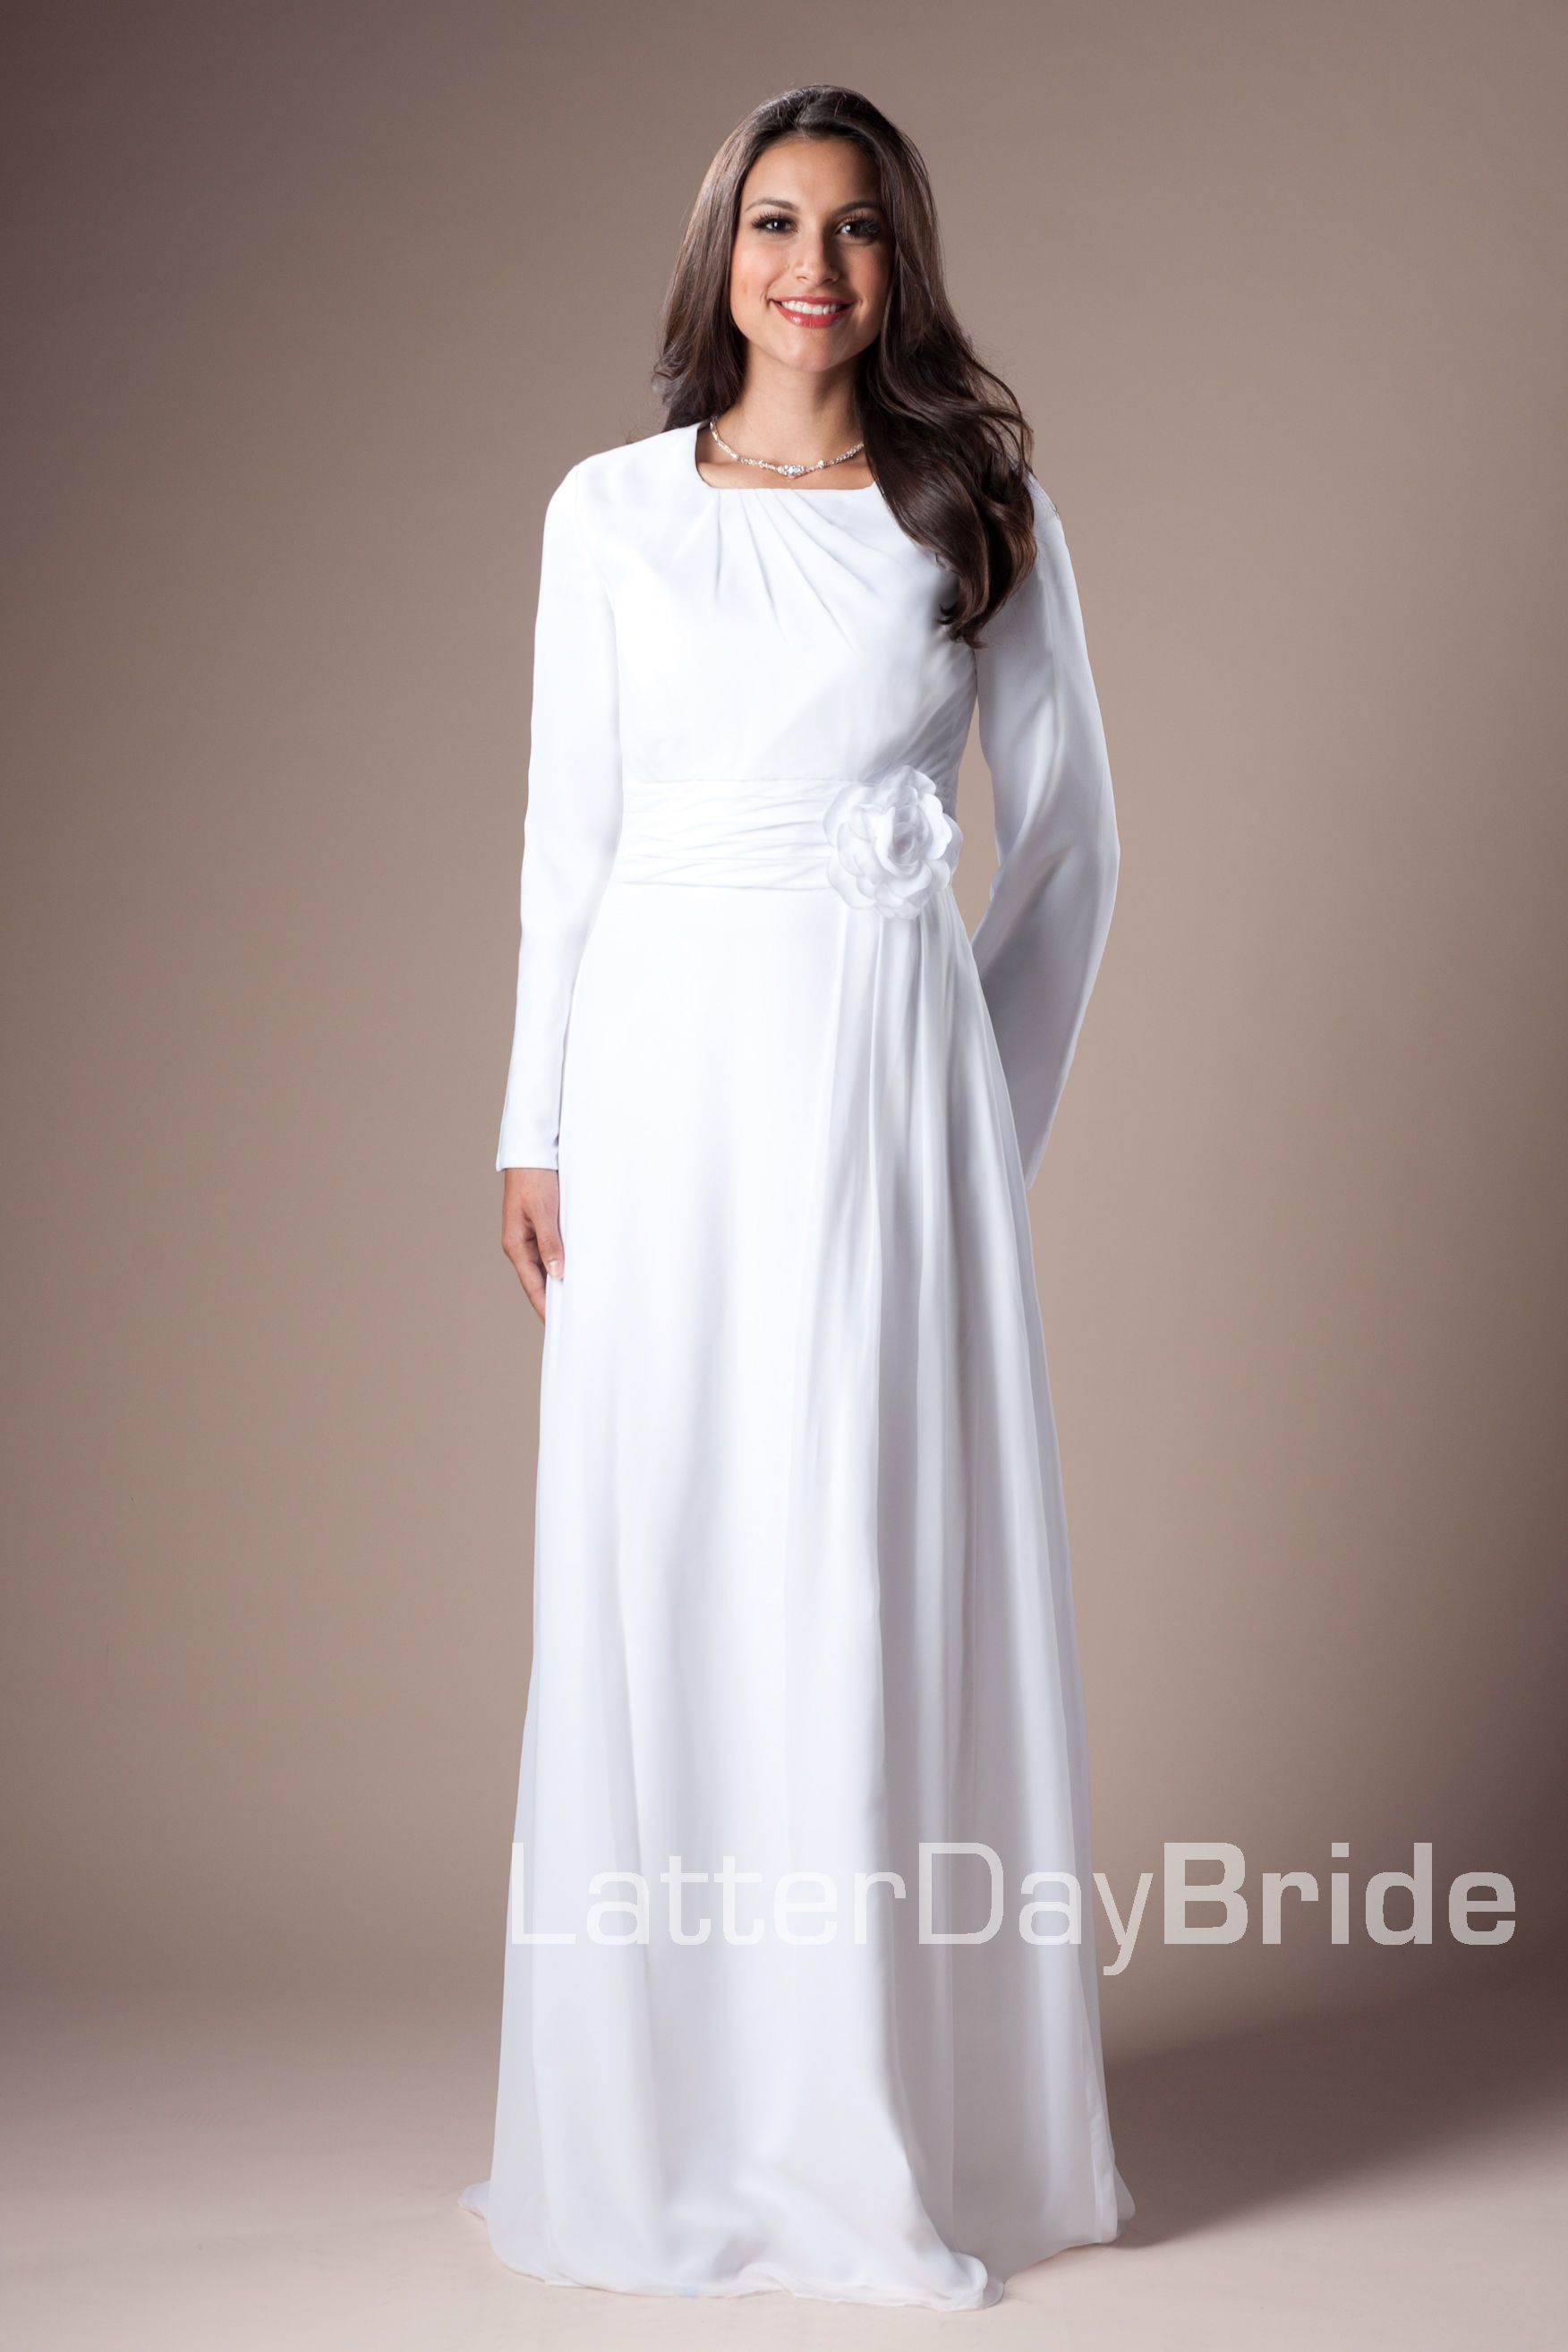 Modest wedding dress baton rouge latterdaybride prom modest modest wedding dress baton rouge latterdaybride prom modest mormon lds temple dress ombrellifo Image collections